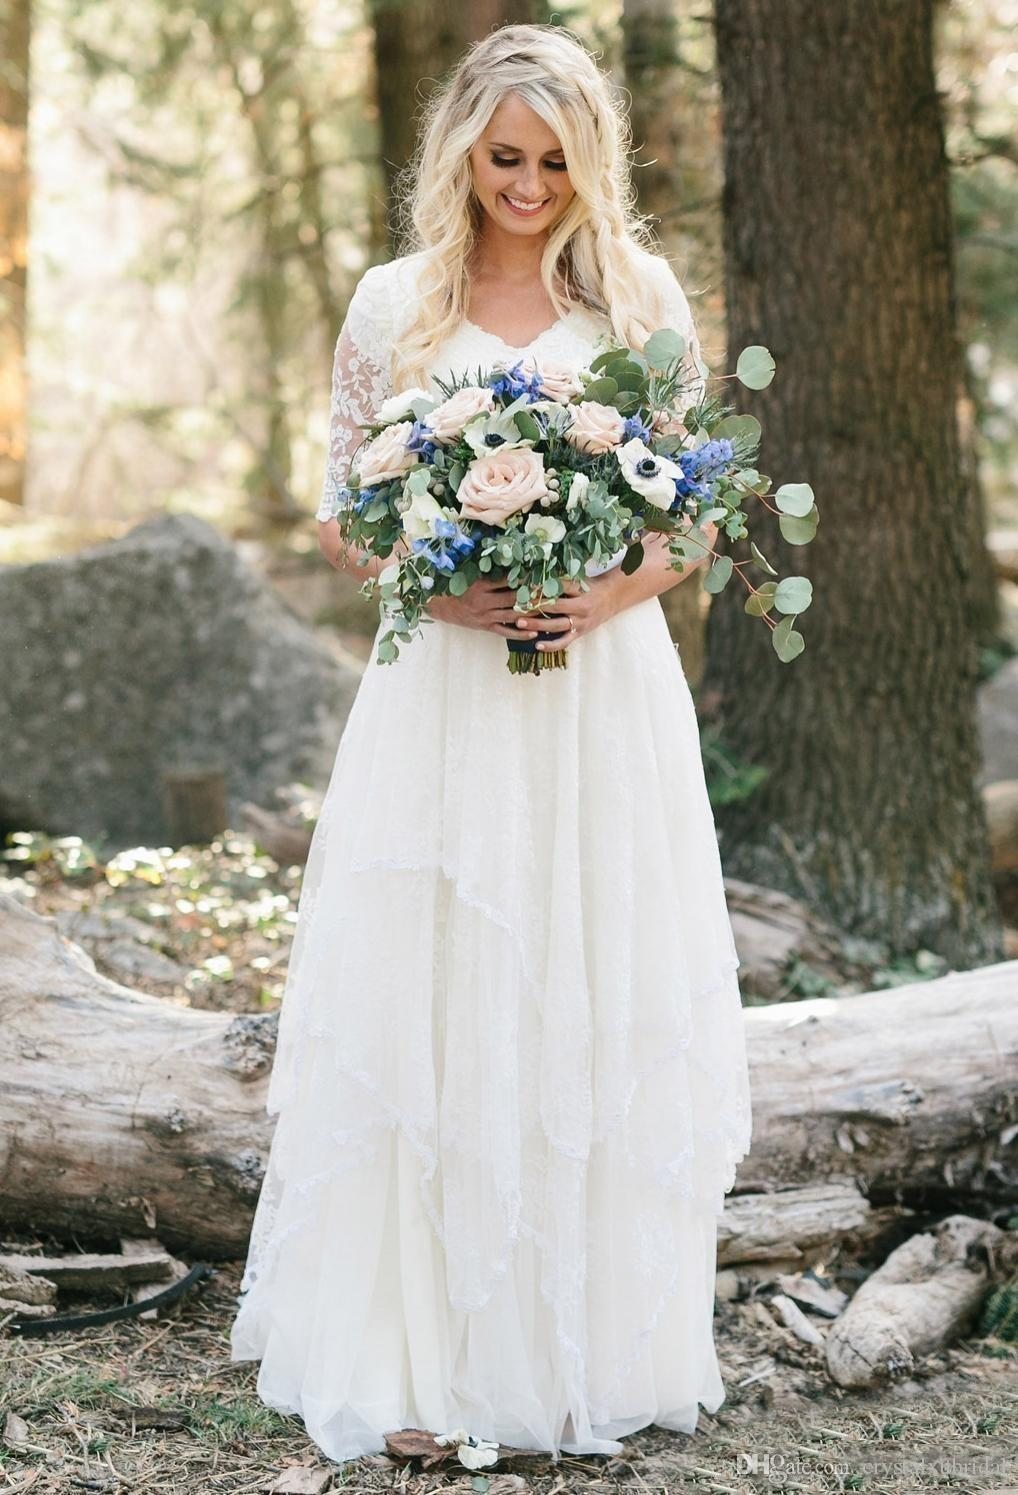 2020 Western Country Bohemian Beach A Line Wedding Dresses V Neck Lace Chiffon Half Sleeves Tiered Floor Length Plus Size Bridal Gowns